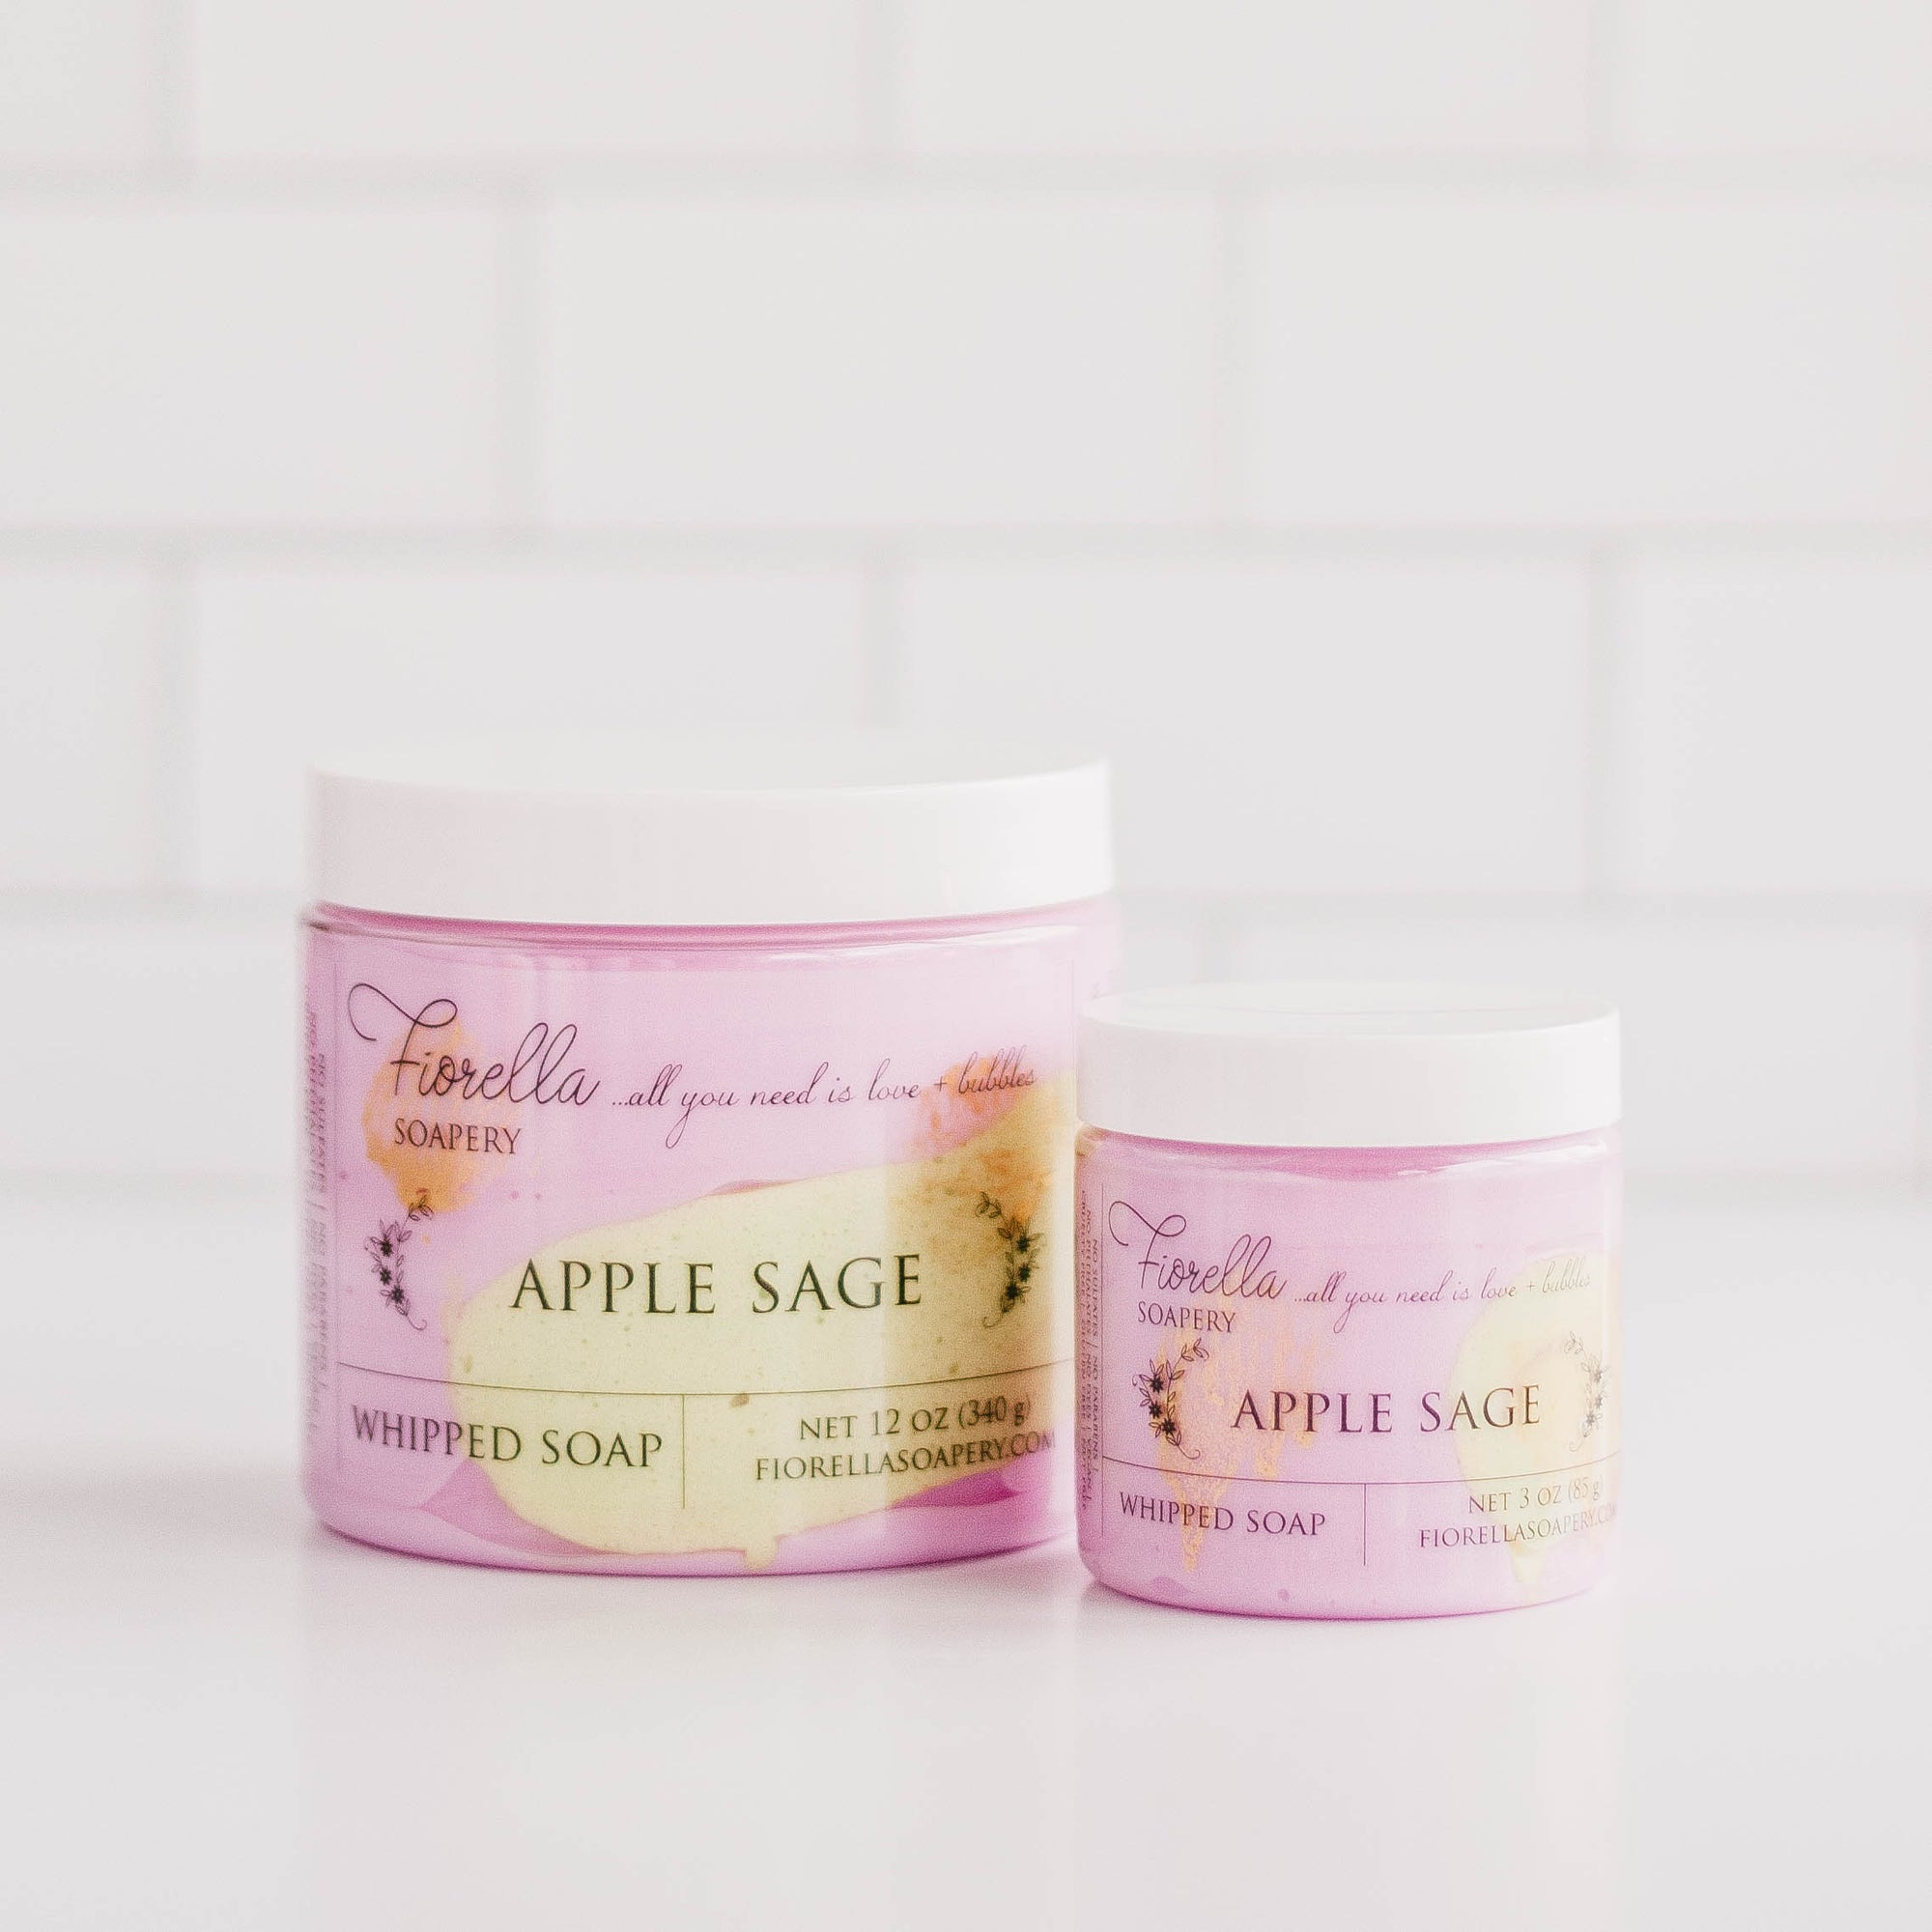 Apple Sage Whipped Soap